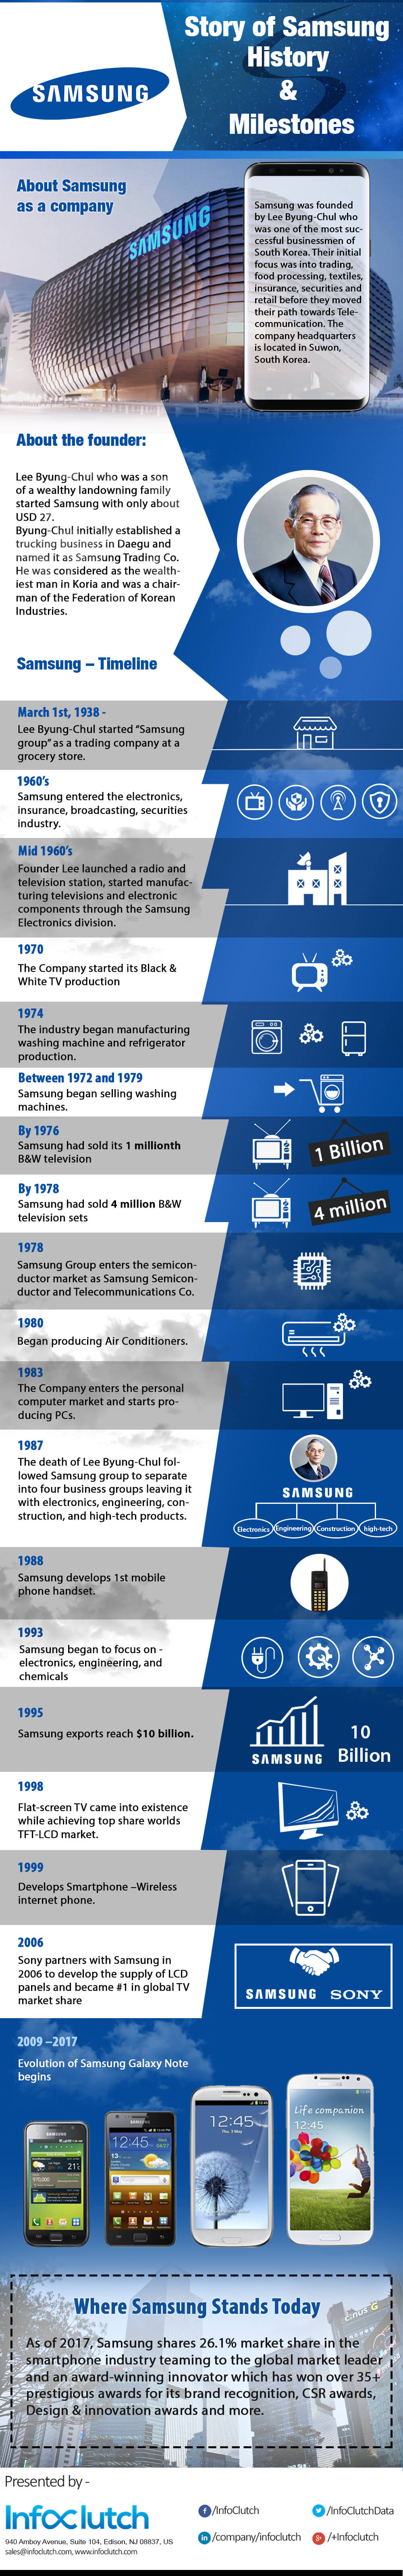 Success Story of Samsung